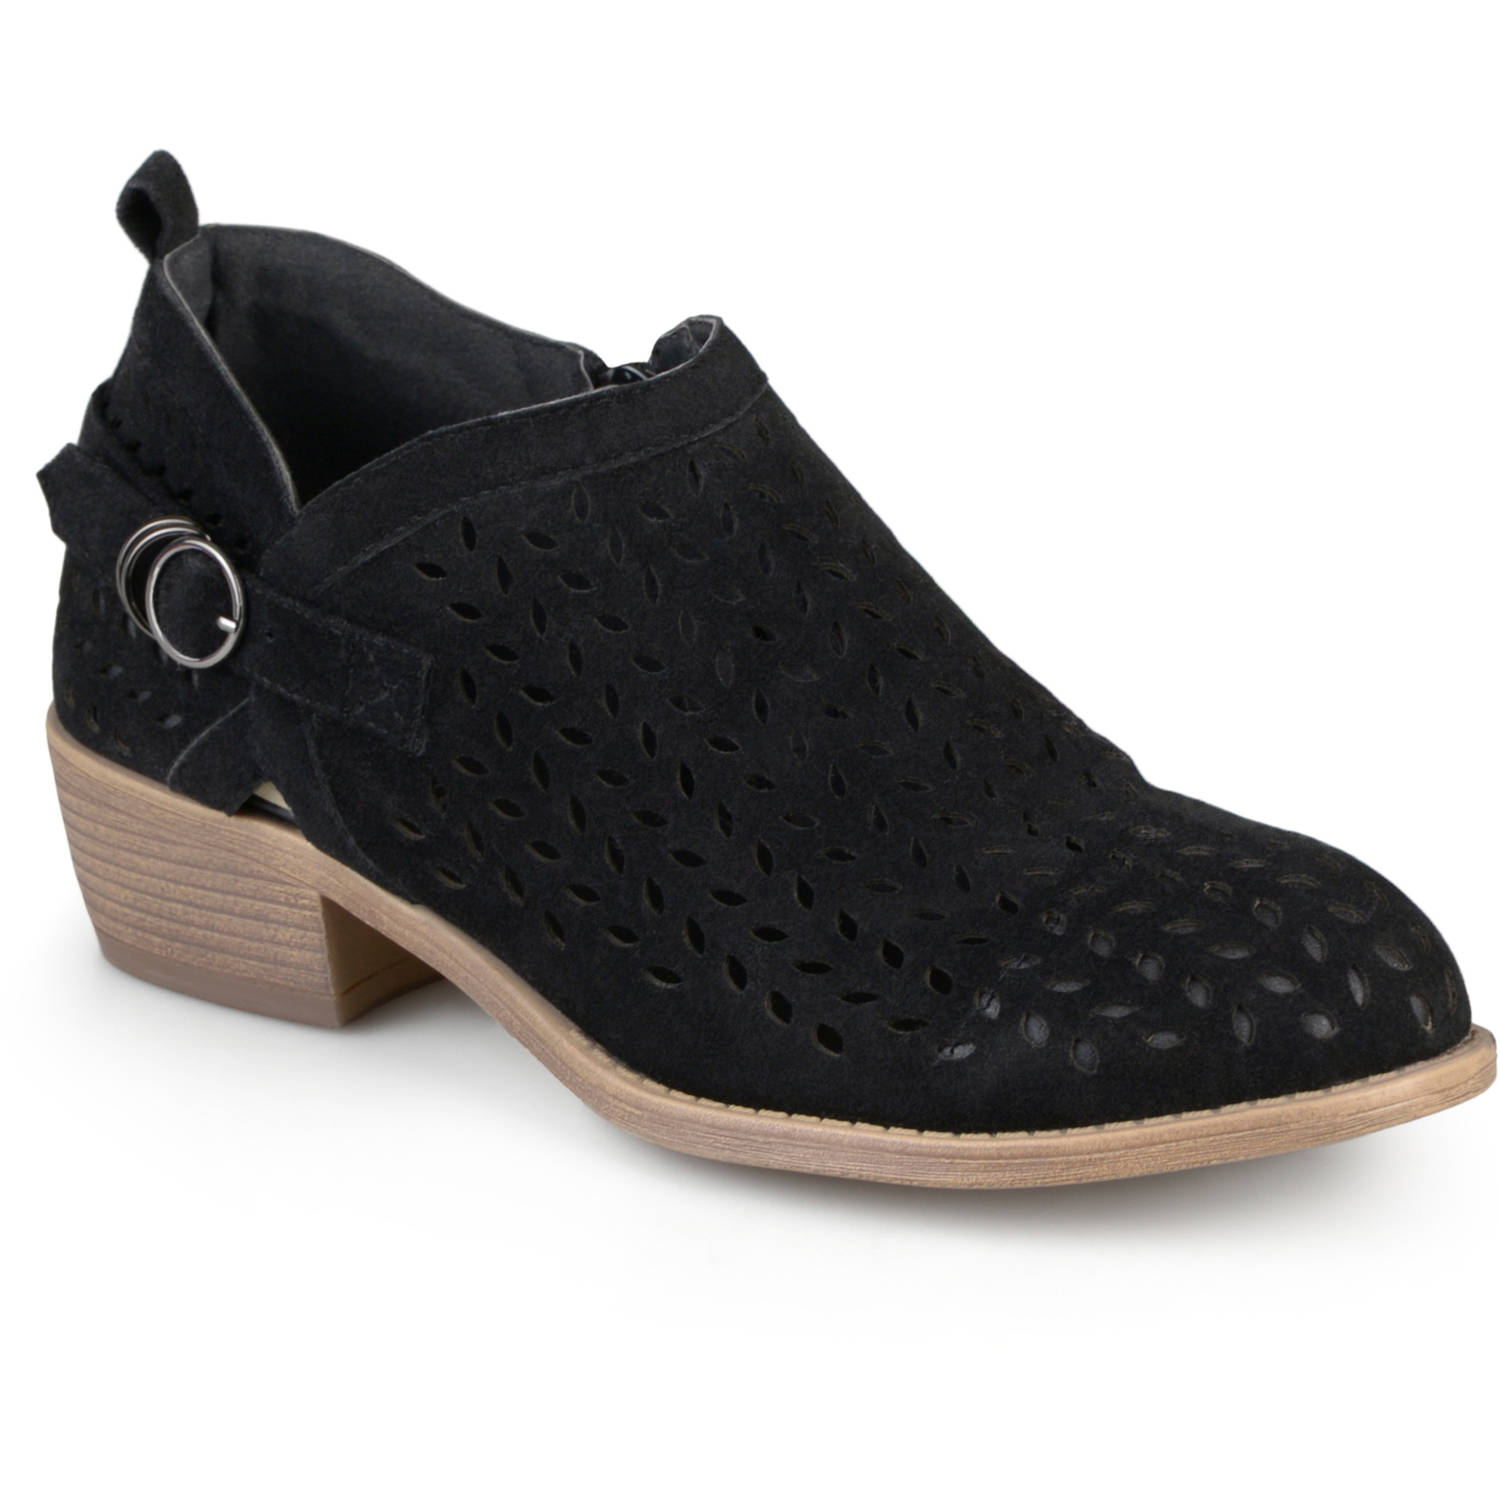 Brinley Co. Womens Stacked Heel Buckle Perforated Round Toe Ankle Booties